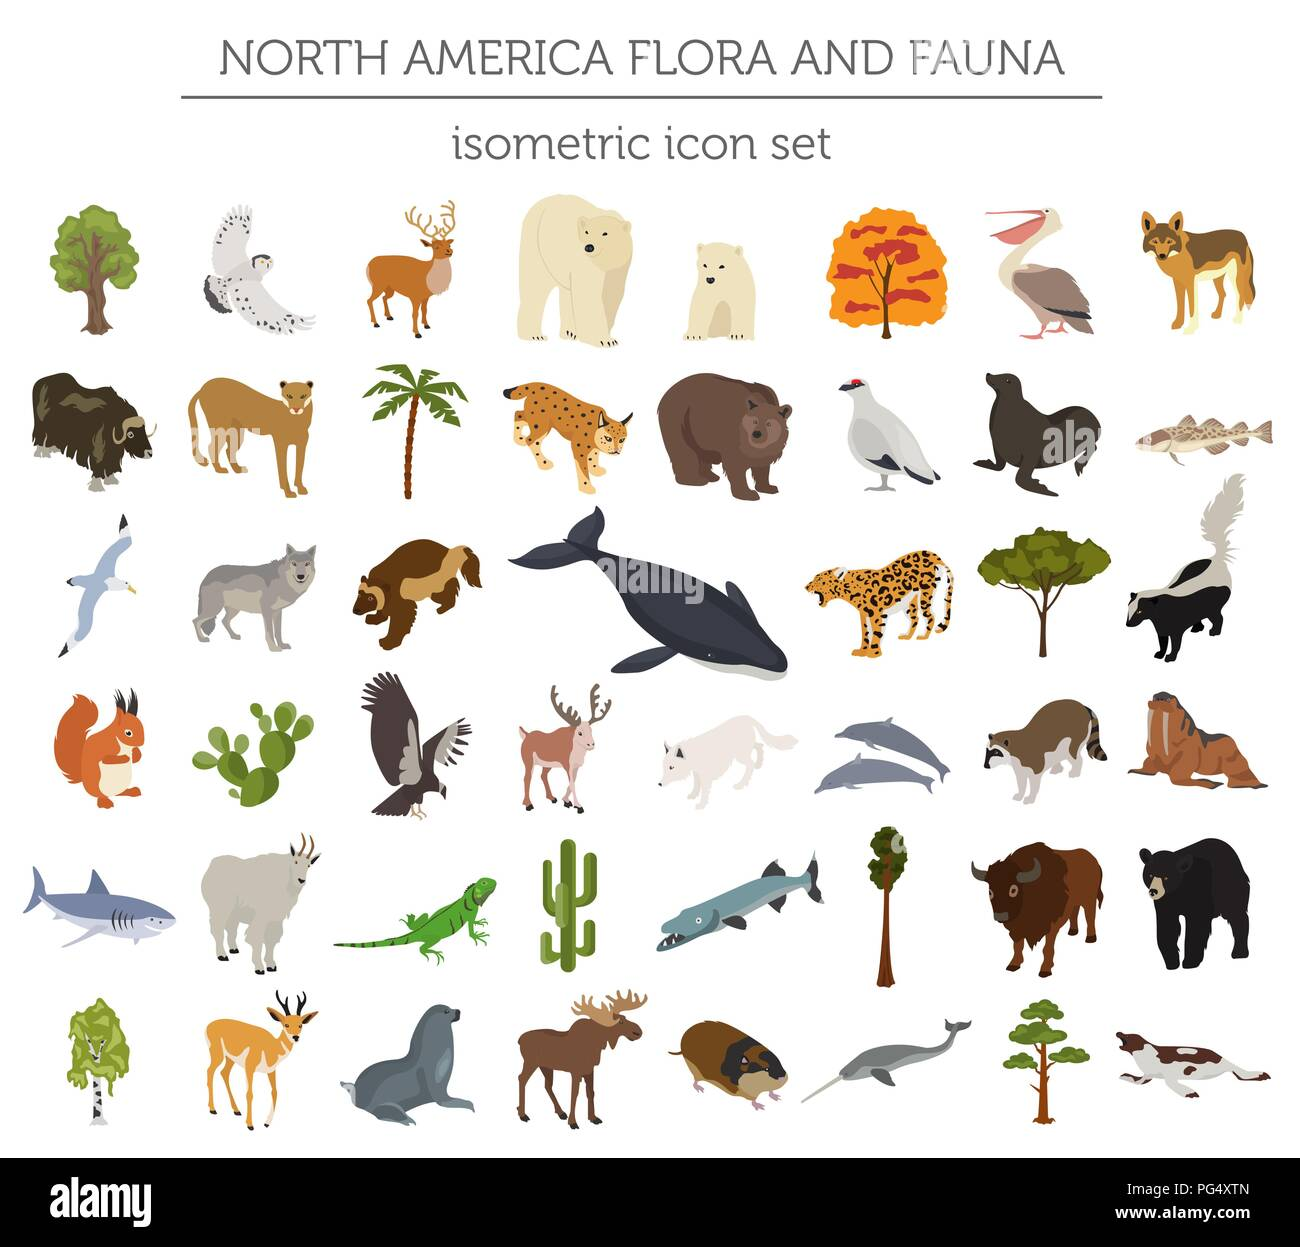 Isometric 3d North America flora and fauna elements. Animals, birds and sea life. Build your own geography infographics collection. Vector illustratio - Stock Vector